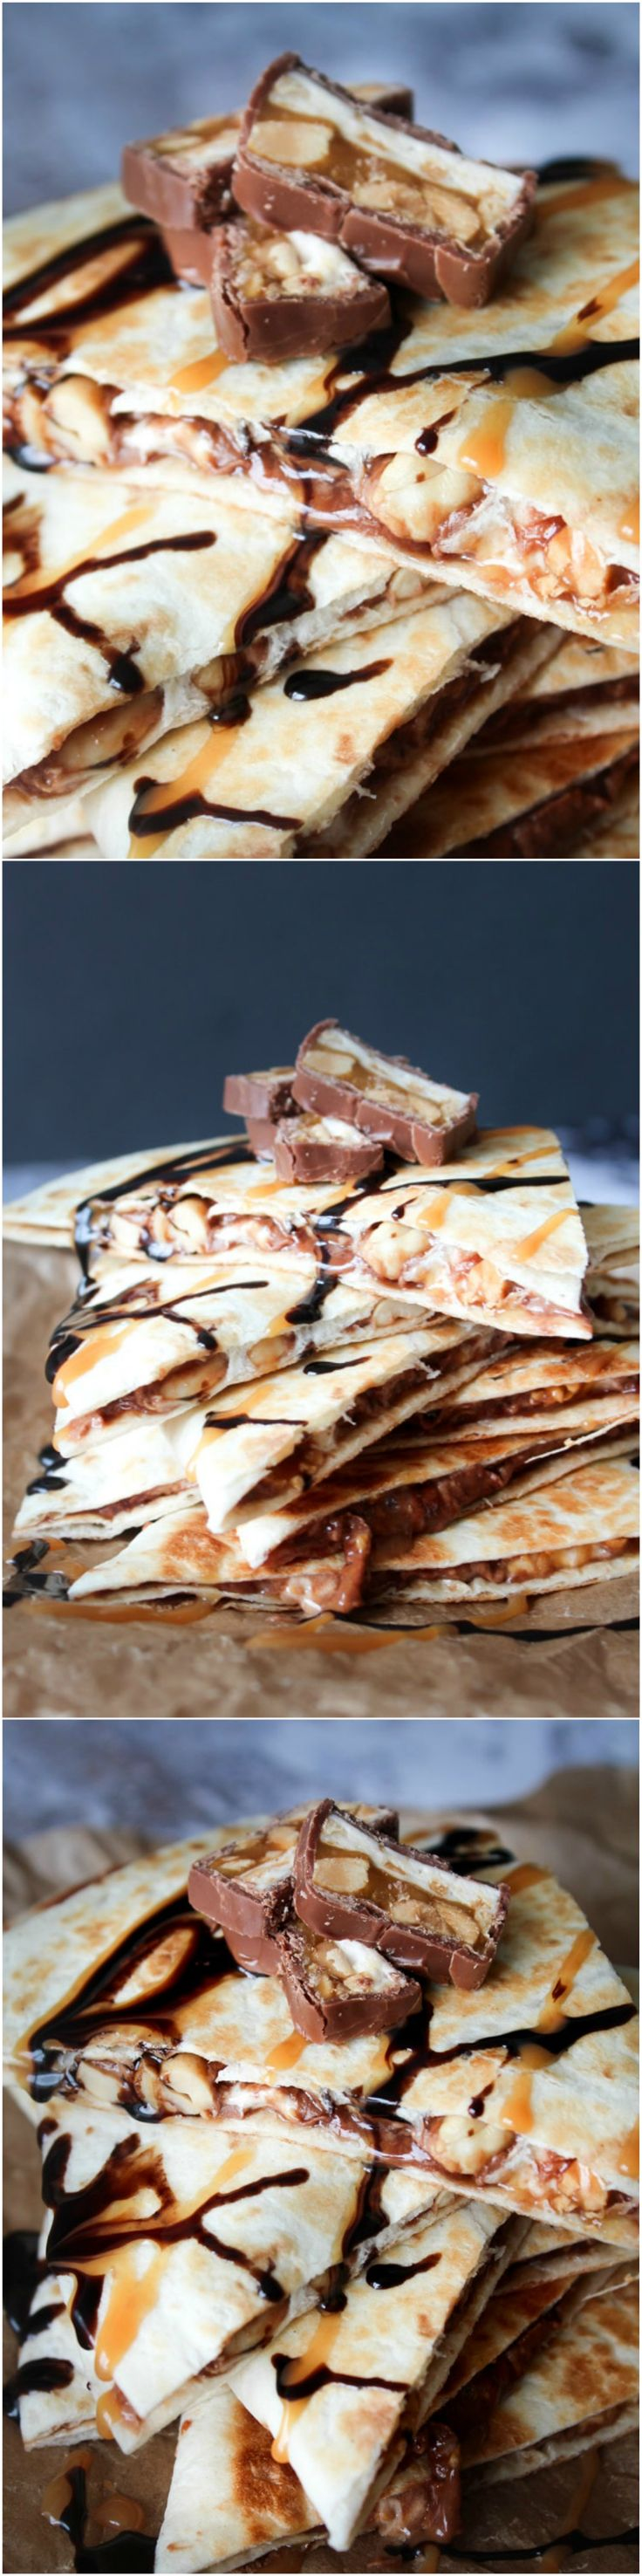 Homemade snickers quesadillas - chocolate recipe - chocolate dessert - snickers dessert - peanut recipe - quesadilla recipe - snack - homemade snack